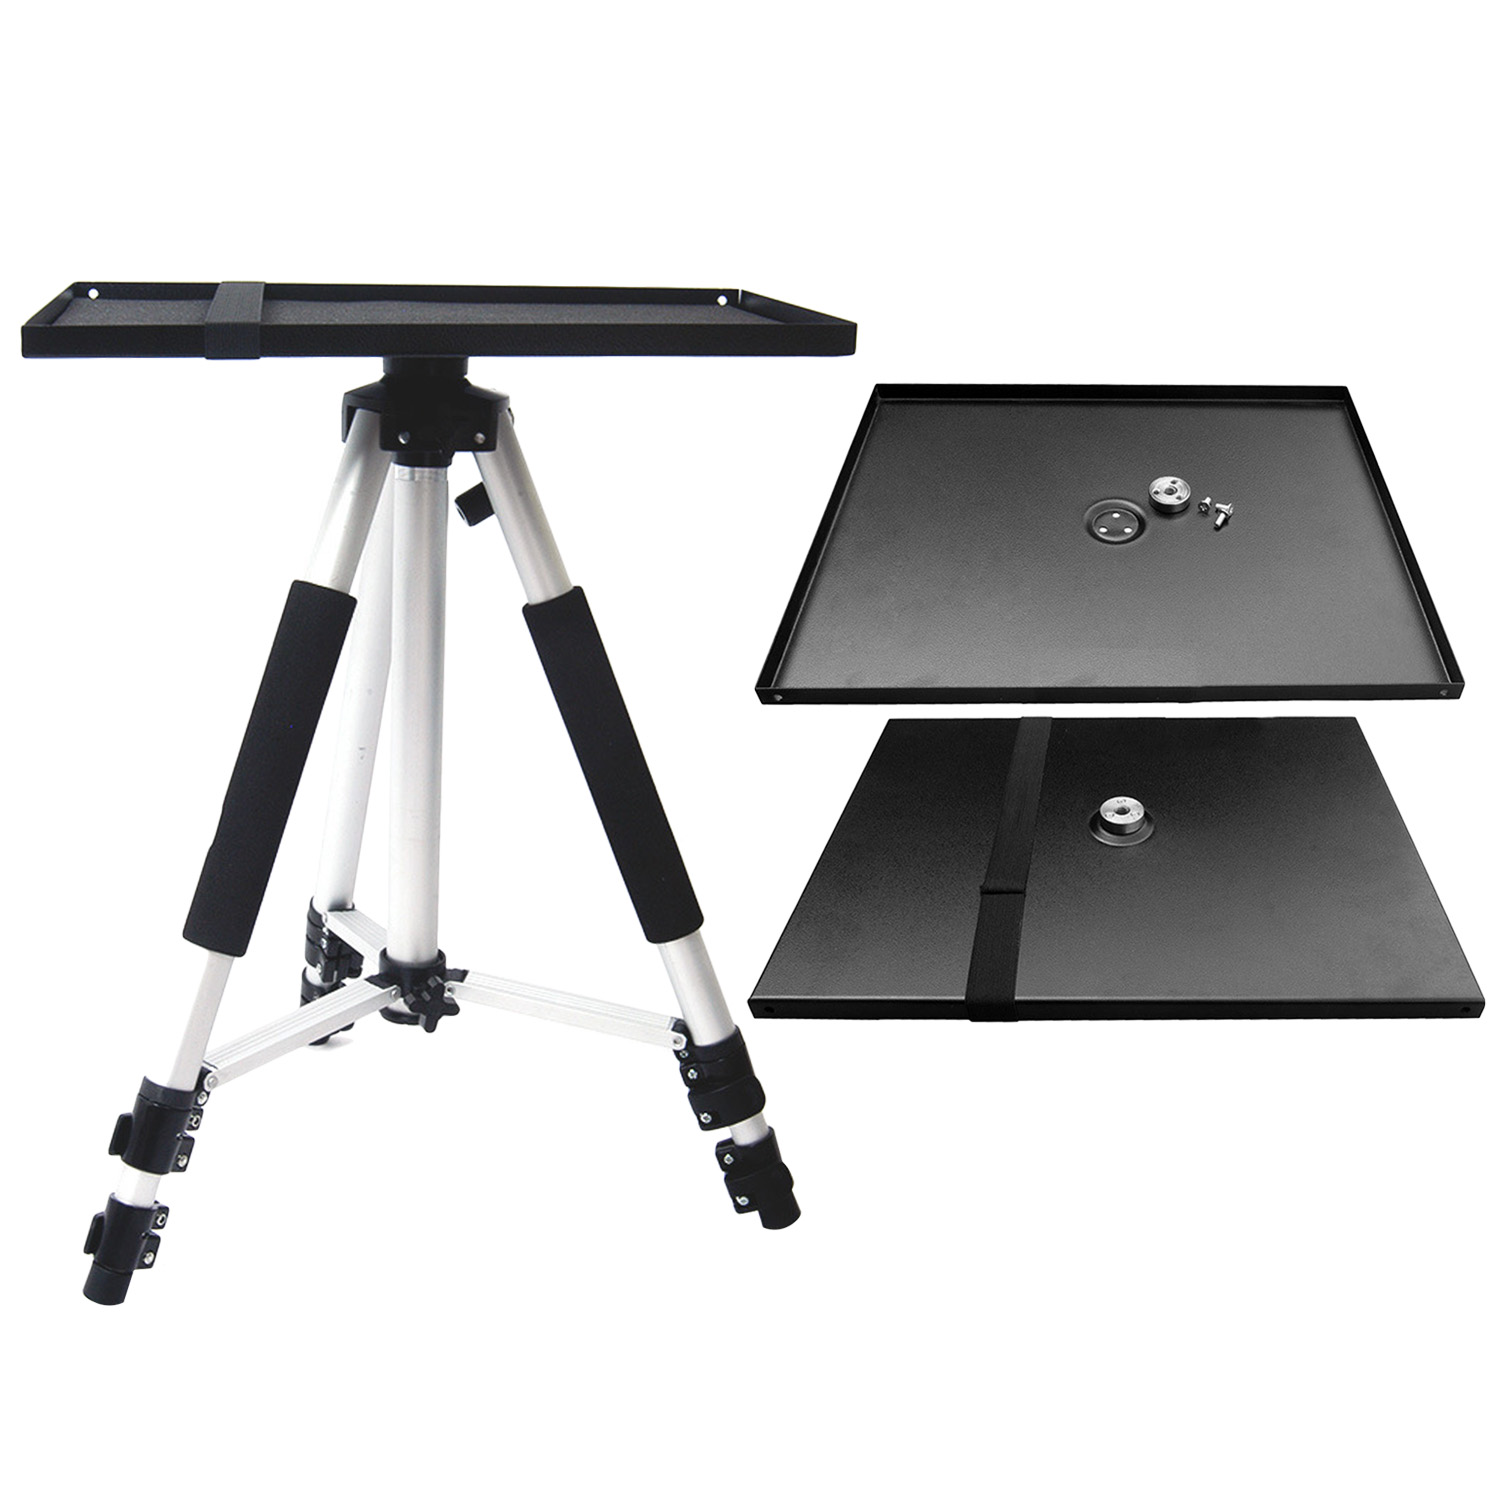 Besegad 34x24cm Universal Metal Tray Stand Platen Platform Holder for 3/8inch Tripod Projectors Monitors Laptops